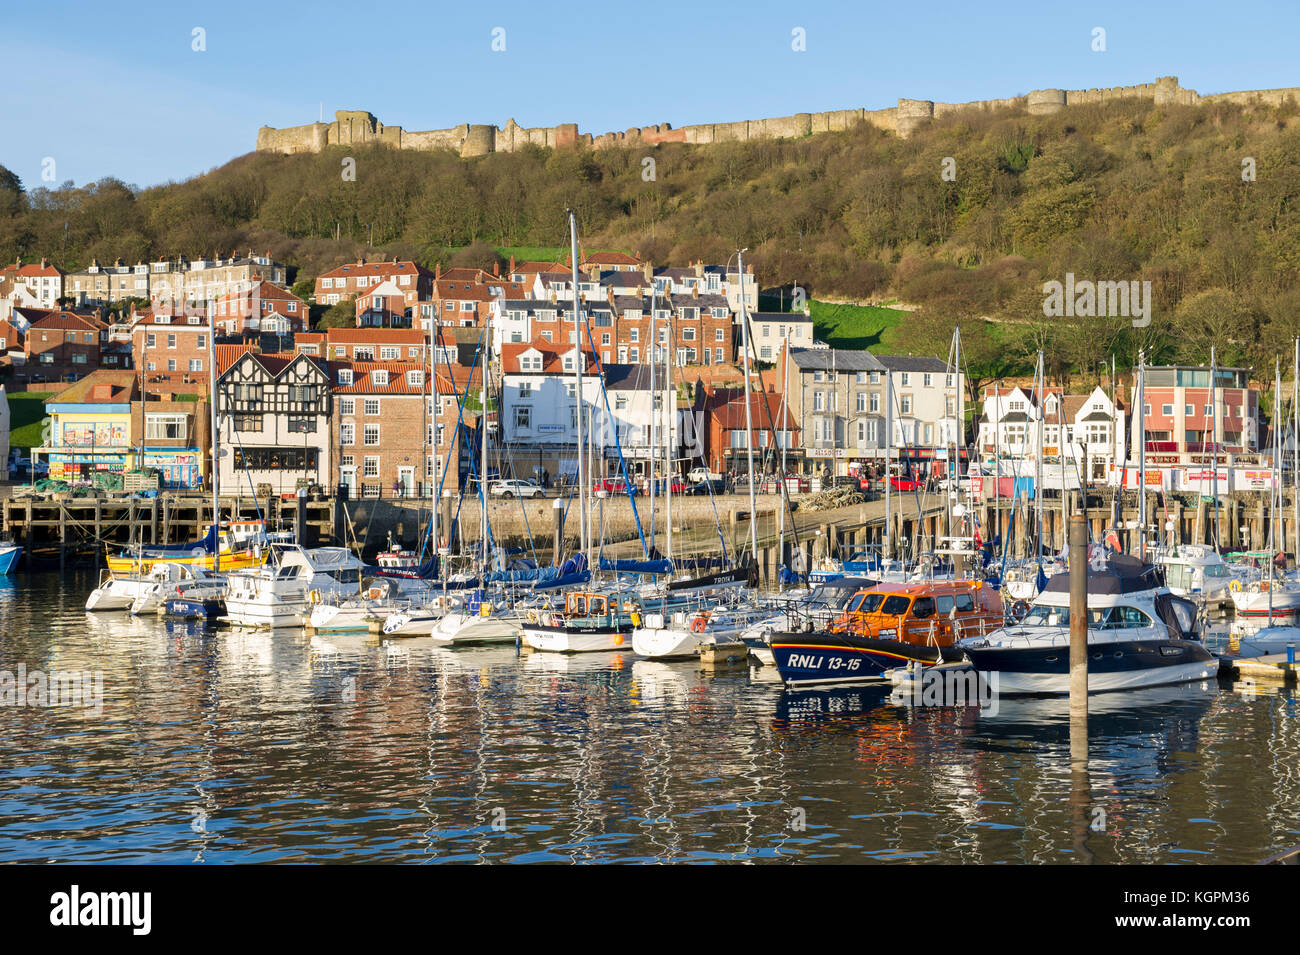 The boats in the Harbour overlooked by the buildings and the historic Castle in the North Yorkshire seaside town - Stock Image